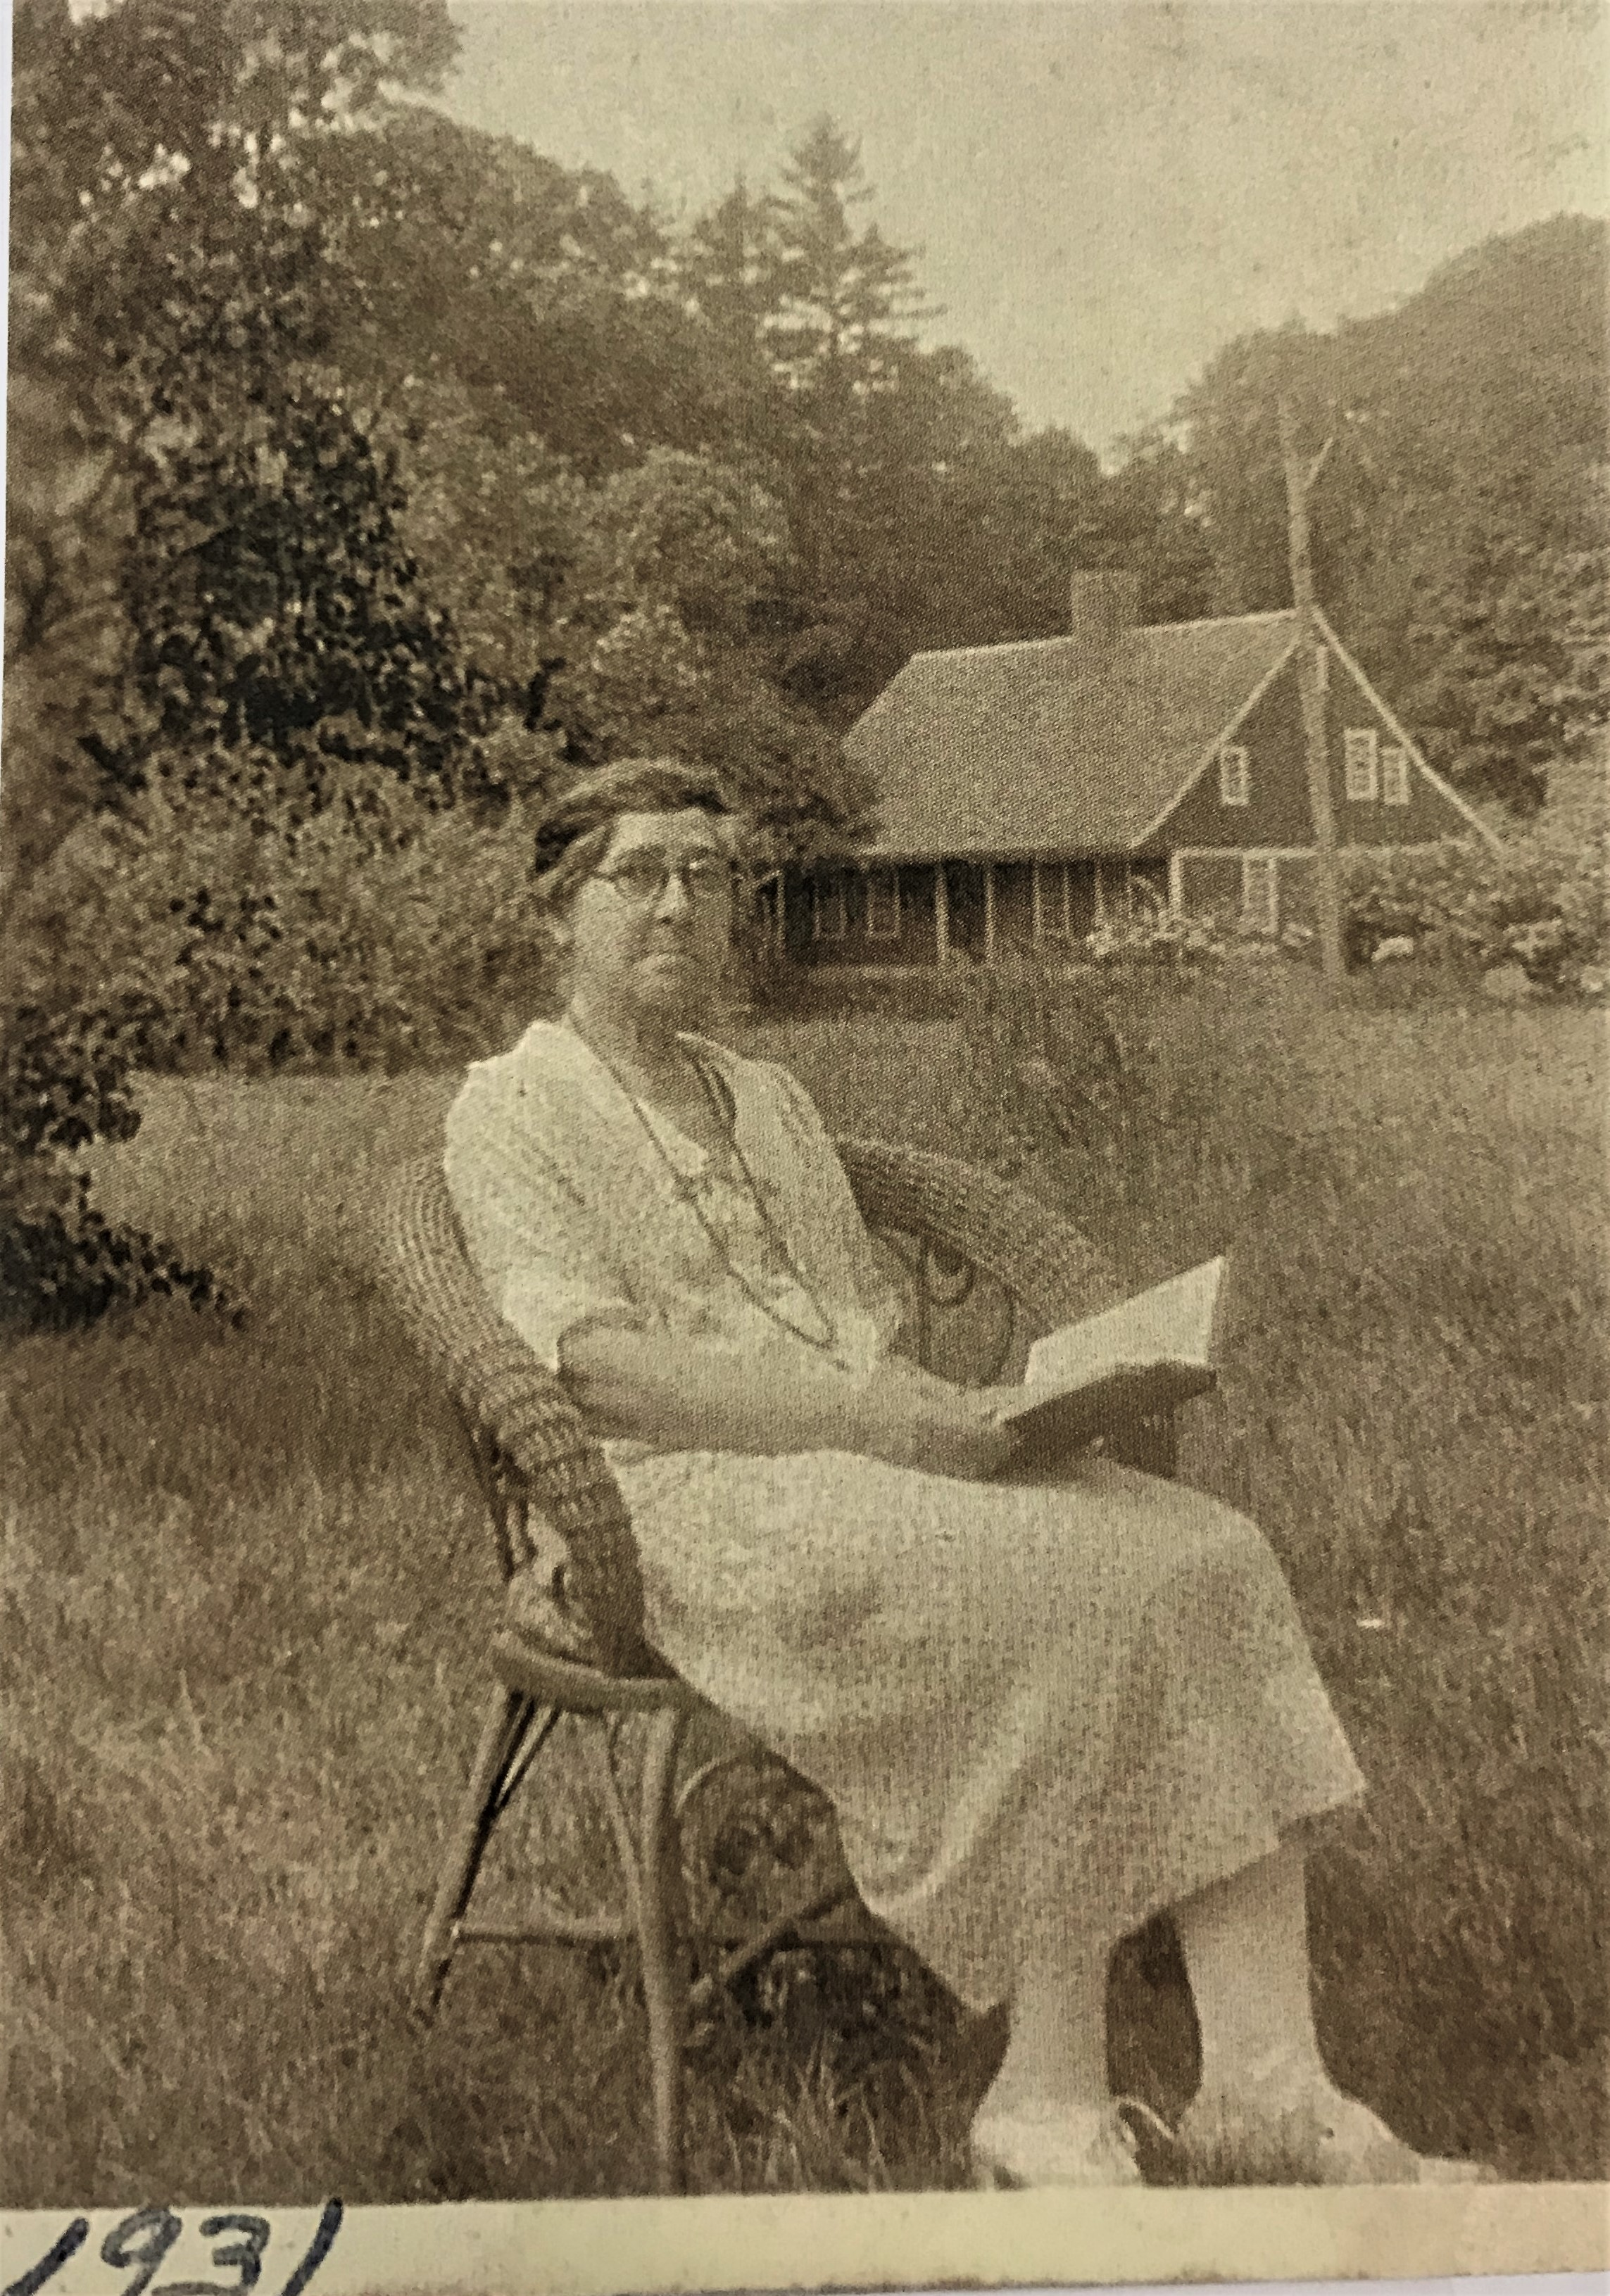 The last of the direct descendants to live in the Old Red House, Carolyn Dickerman (1868-1958), was an active member of the Hamden Historical Society and served as summer curator of the house until shortly before her death.